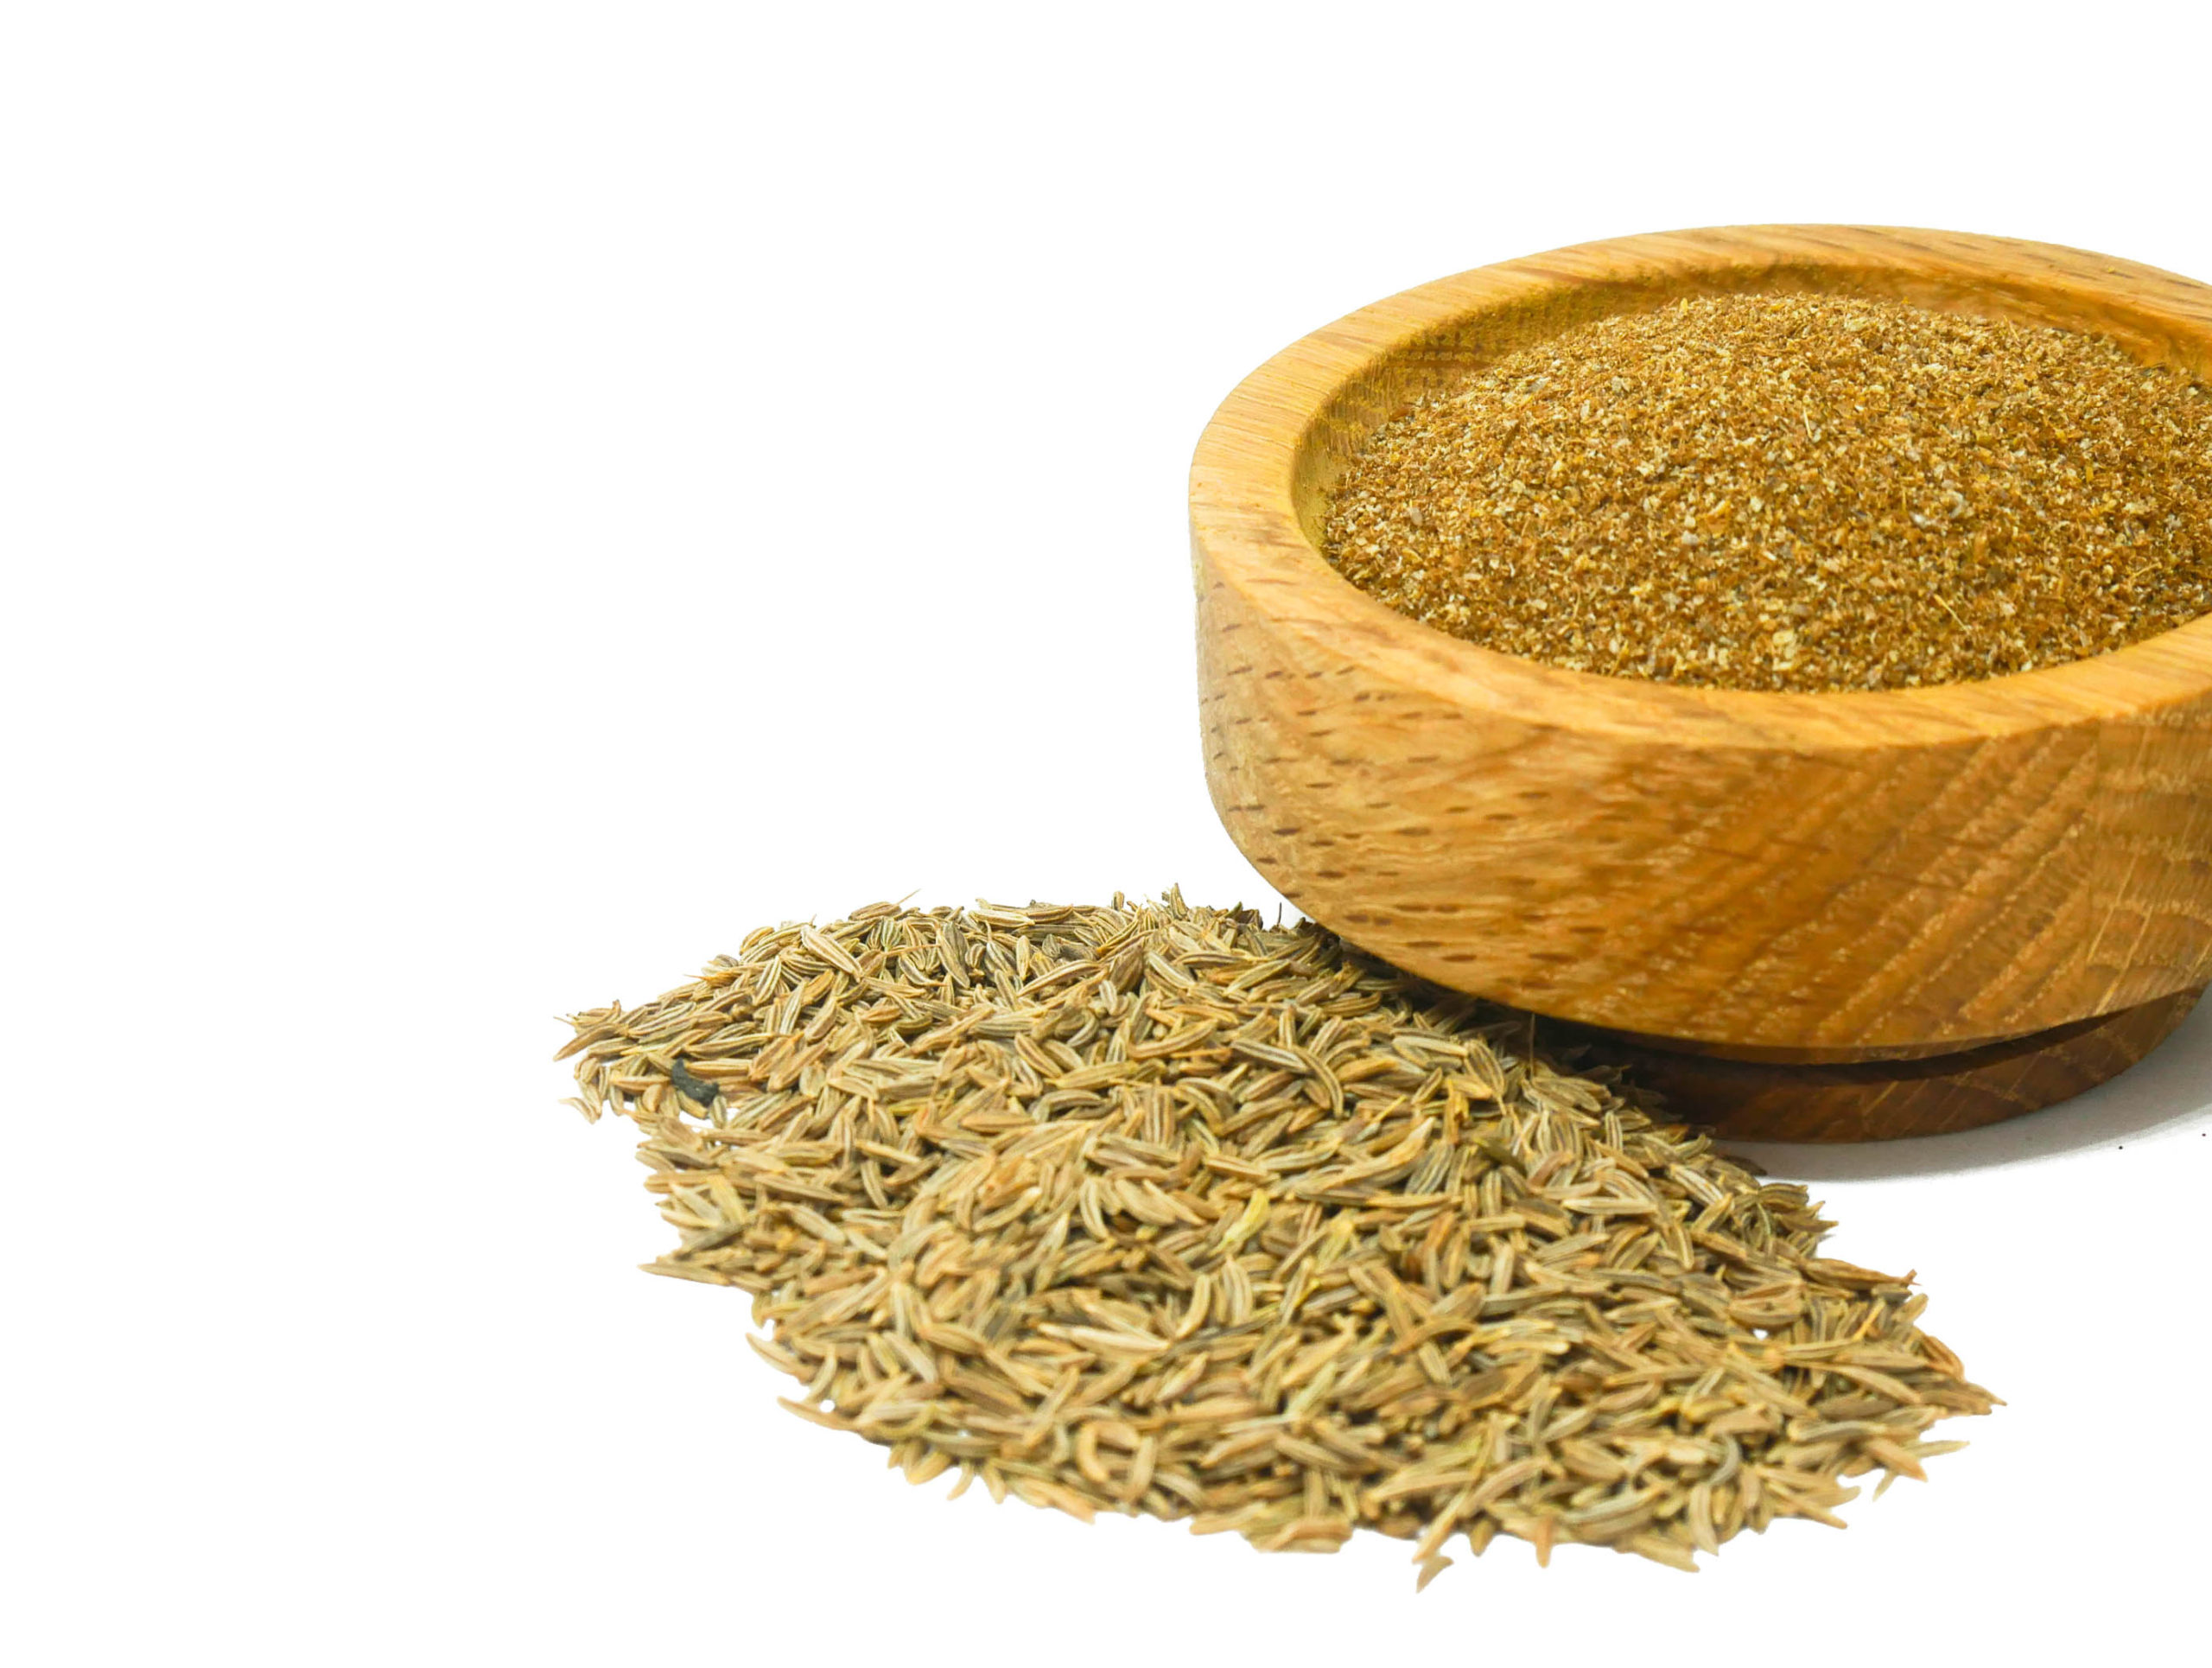 Ground and whole Caraway Seed from the Natural Spot